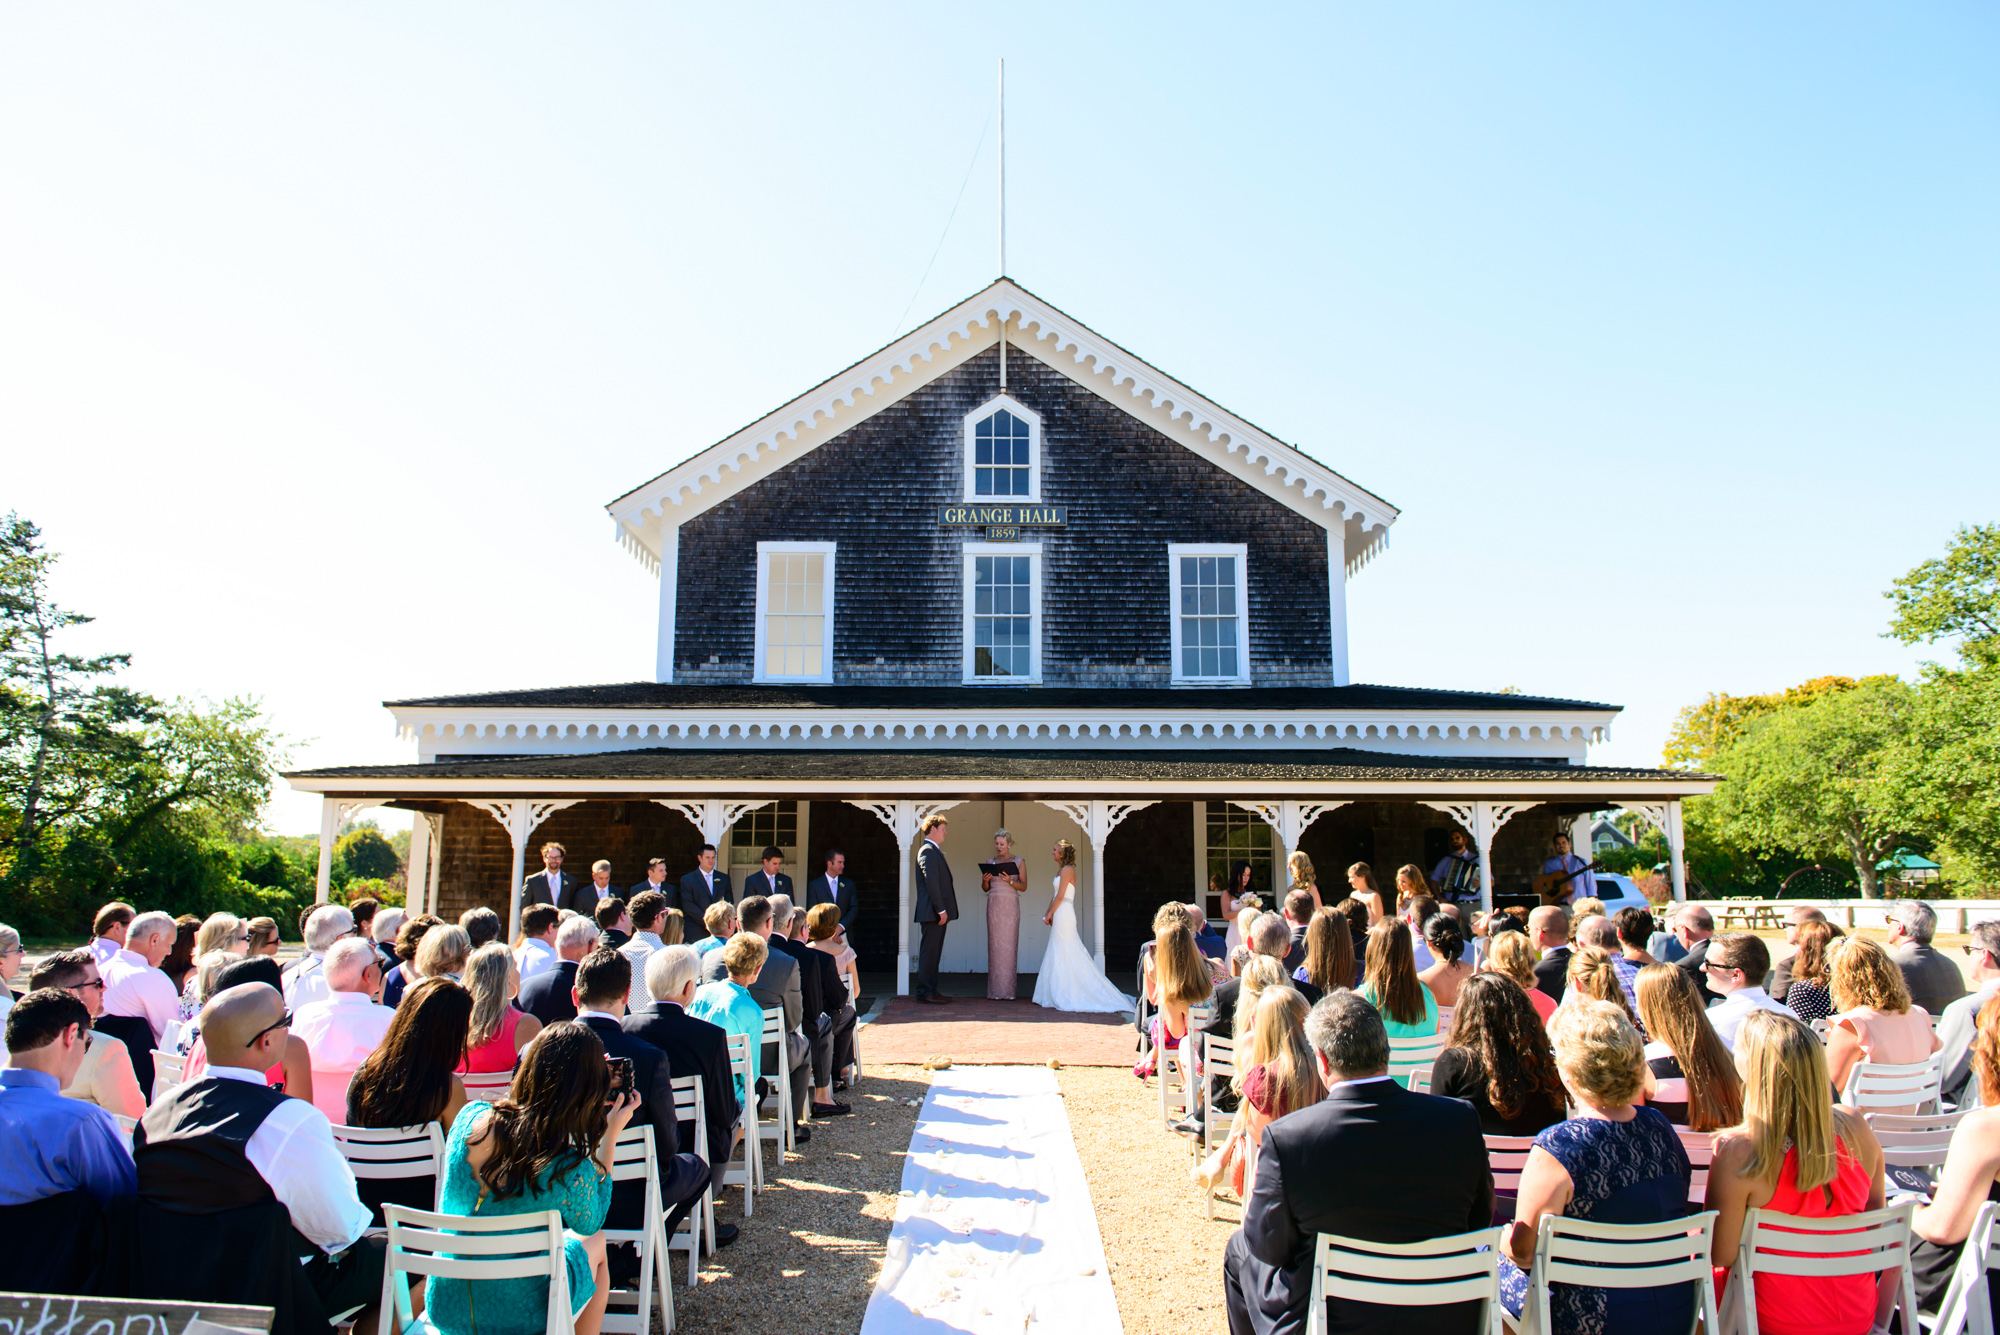 A wedding ceremony in front of the Grange Hall in West Tisbury martha's vineyard wedding venues photo by David Welch Photography